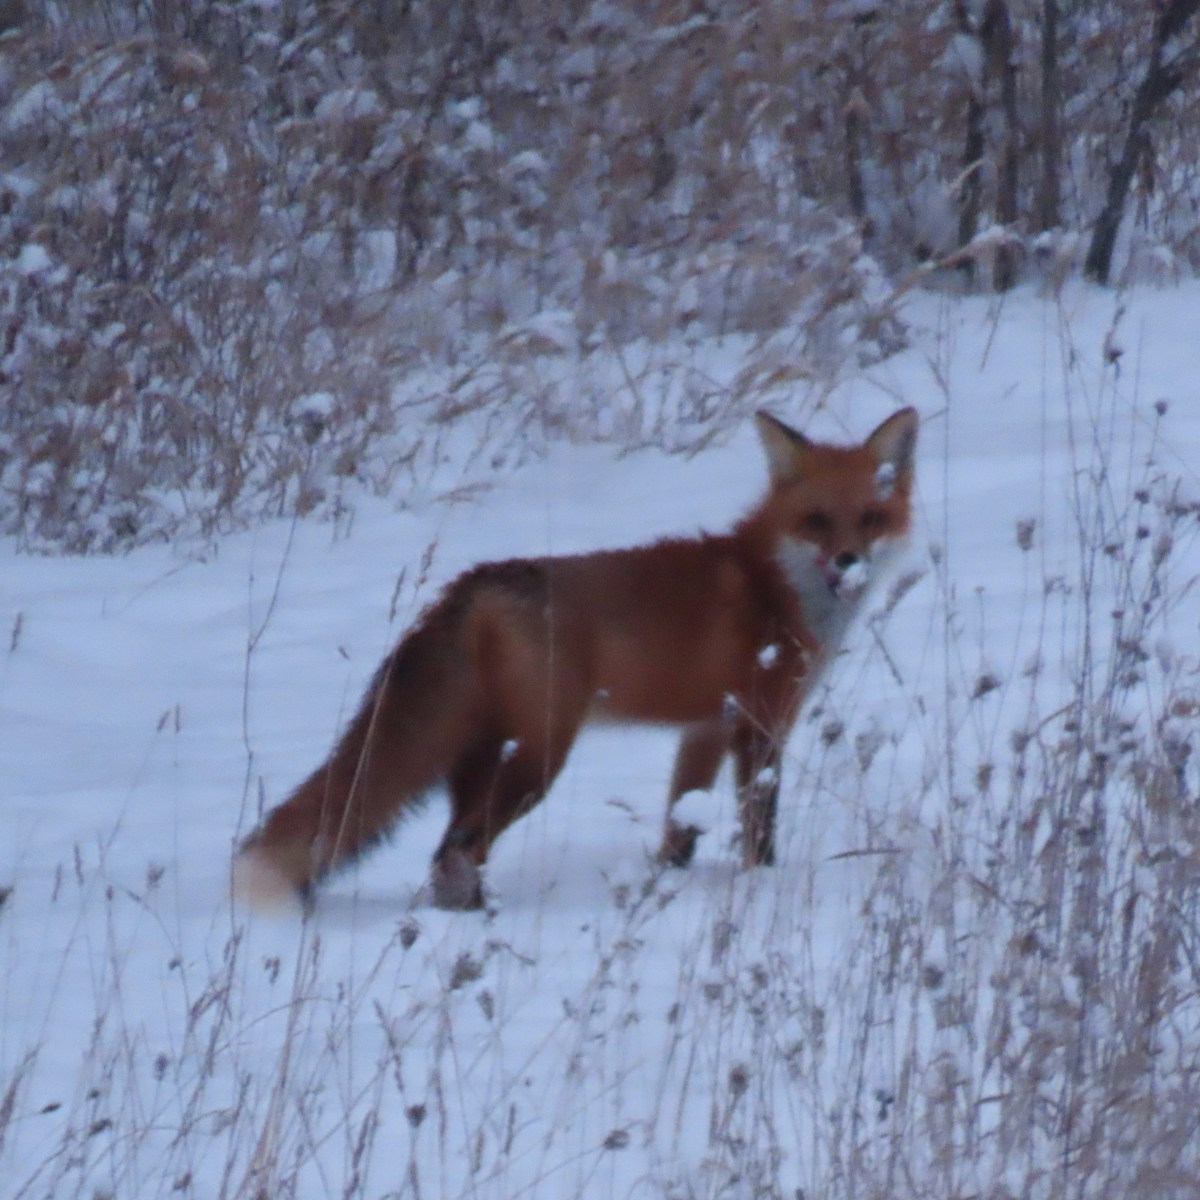 A fox stands in a snowy meadow